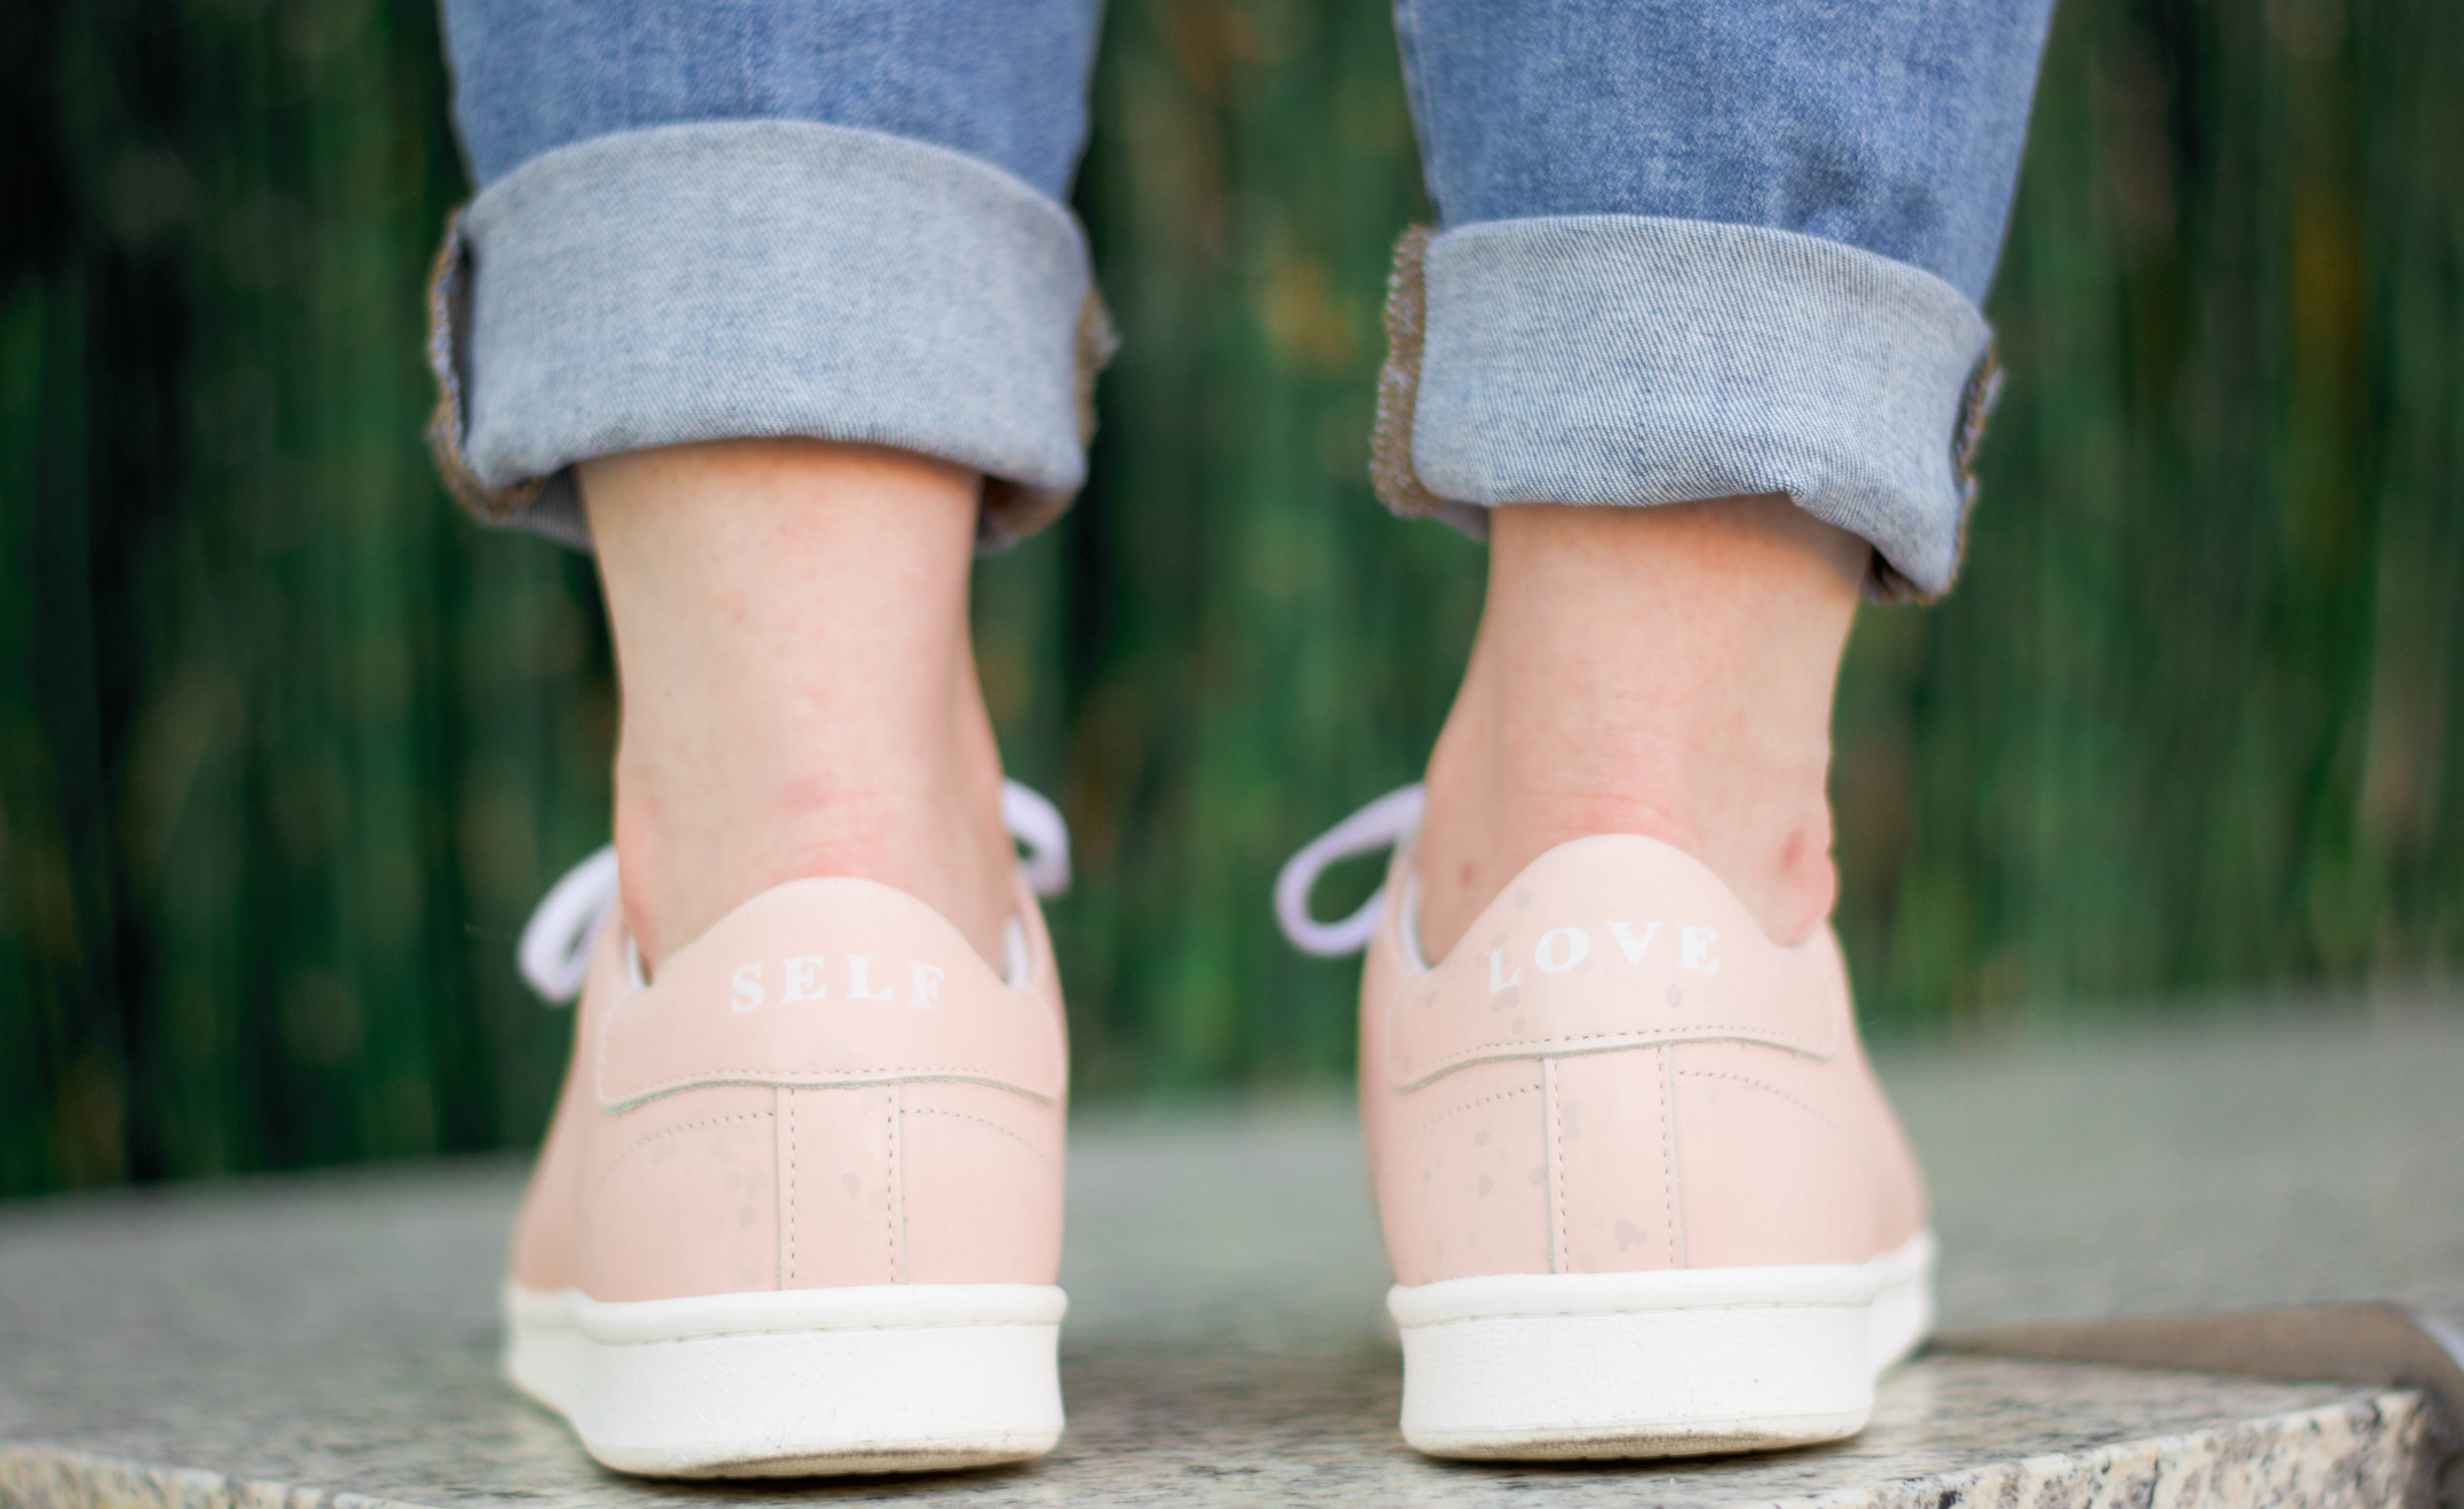 Pink Self Love Shoes // A Week Of Values-Driven Outfits With Emily Waddell From The Honest Consumer on The Good Trade